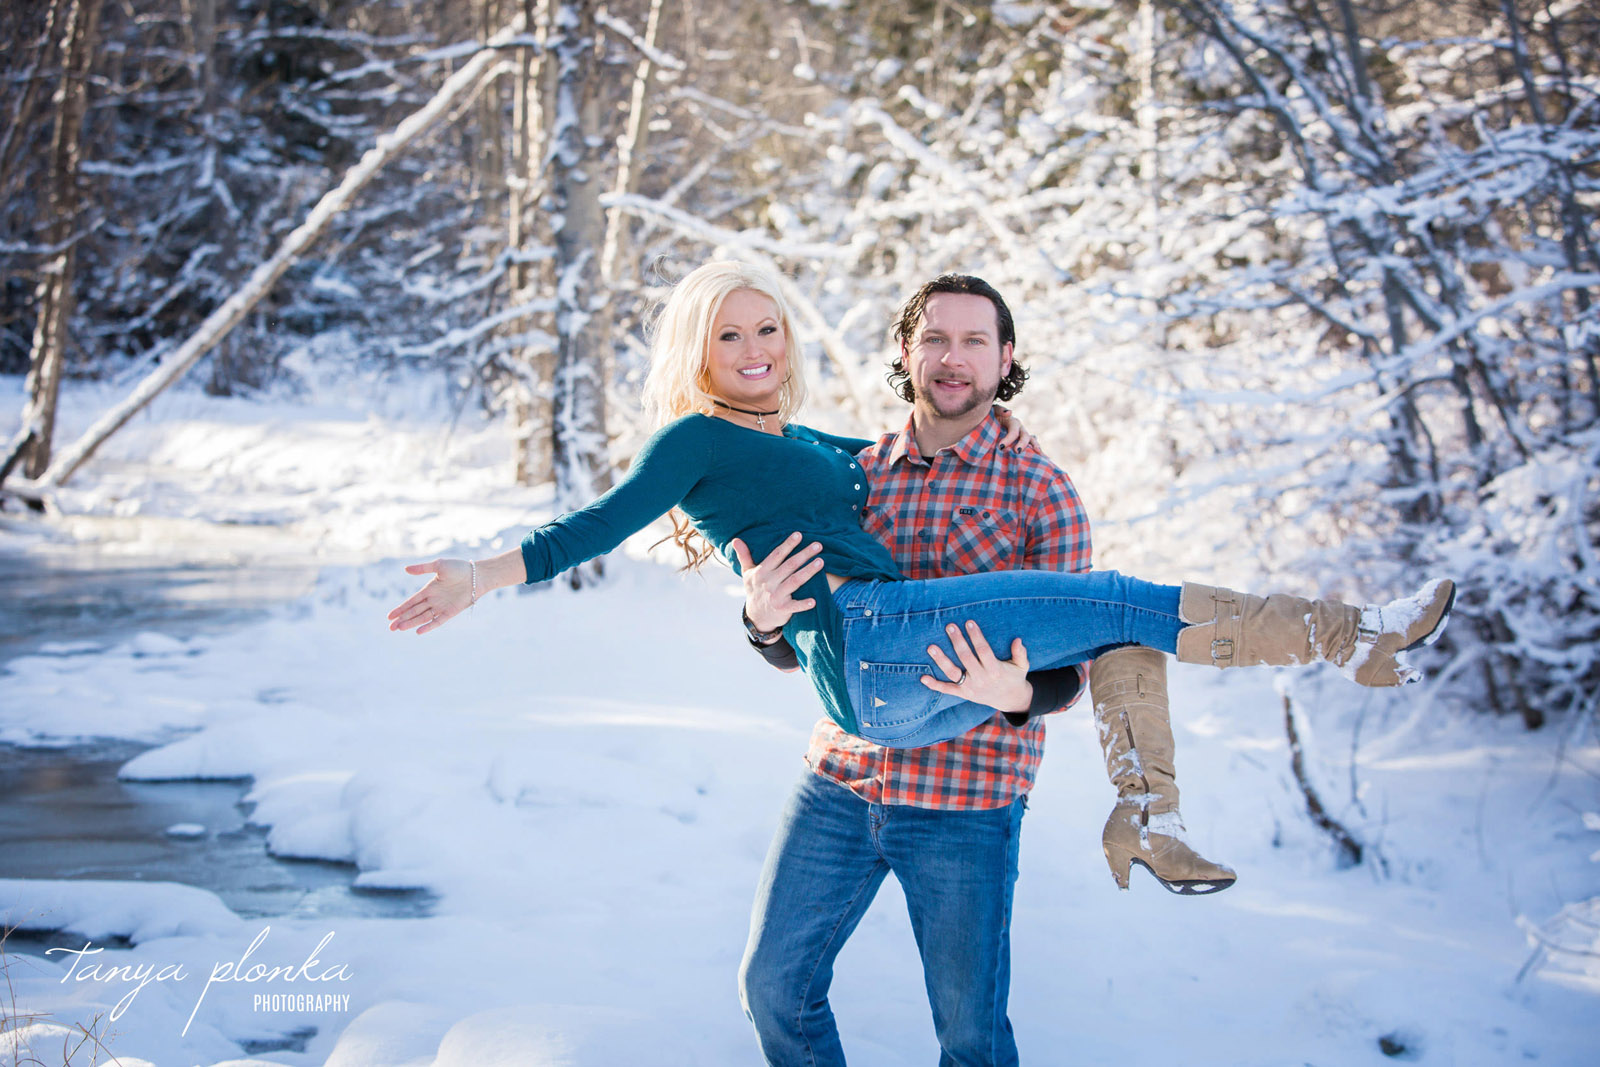 husband lifting happy wife in snowy winter Hillcrest landscape